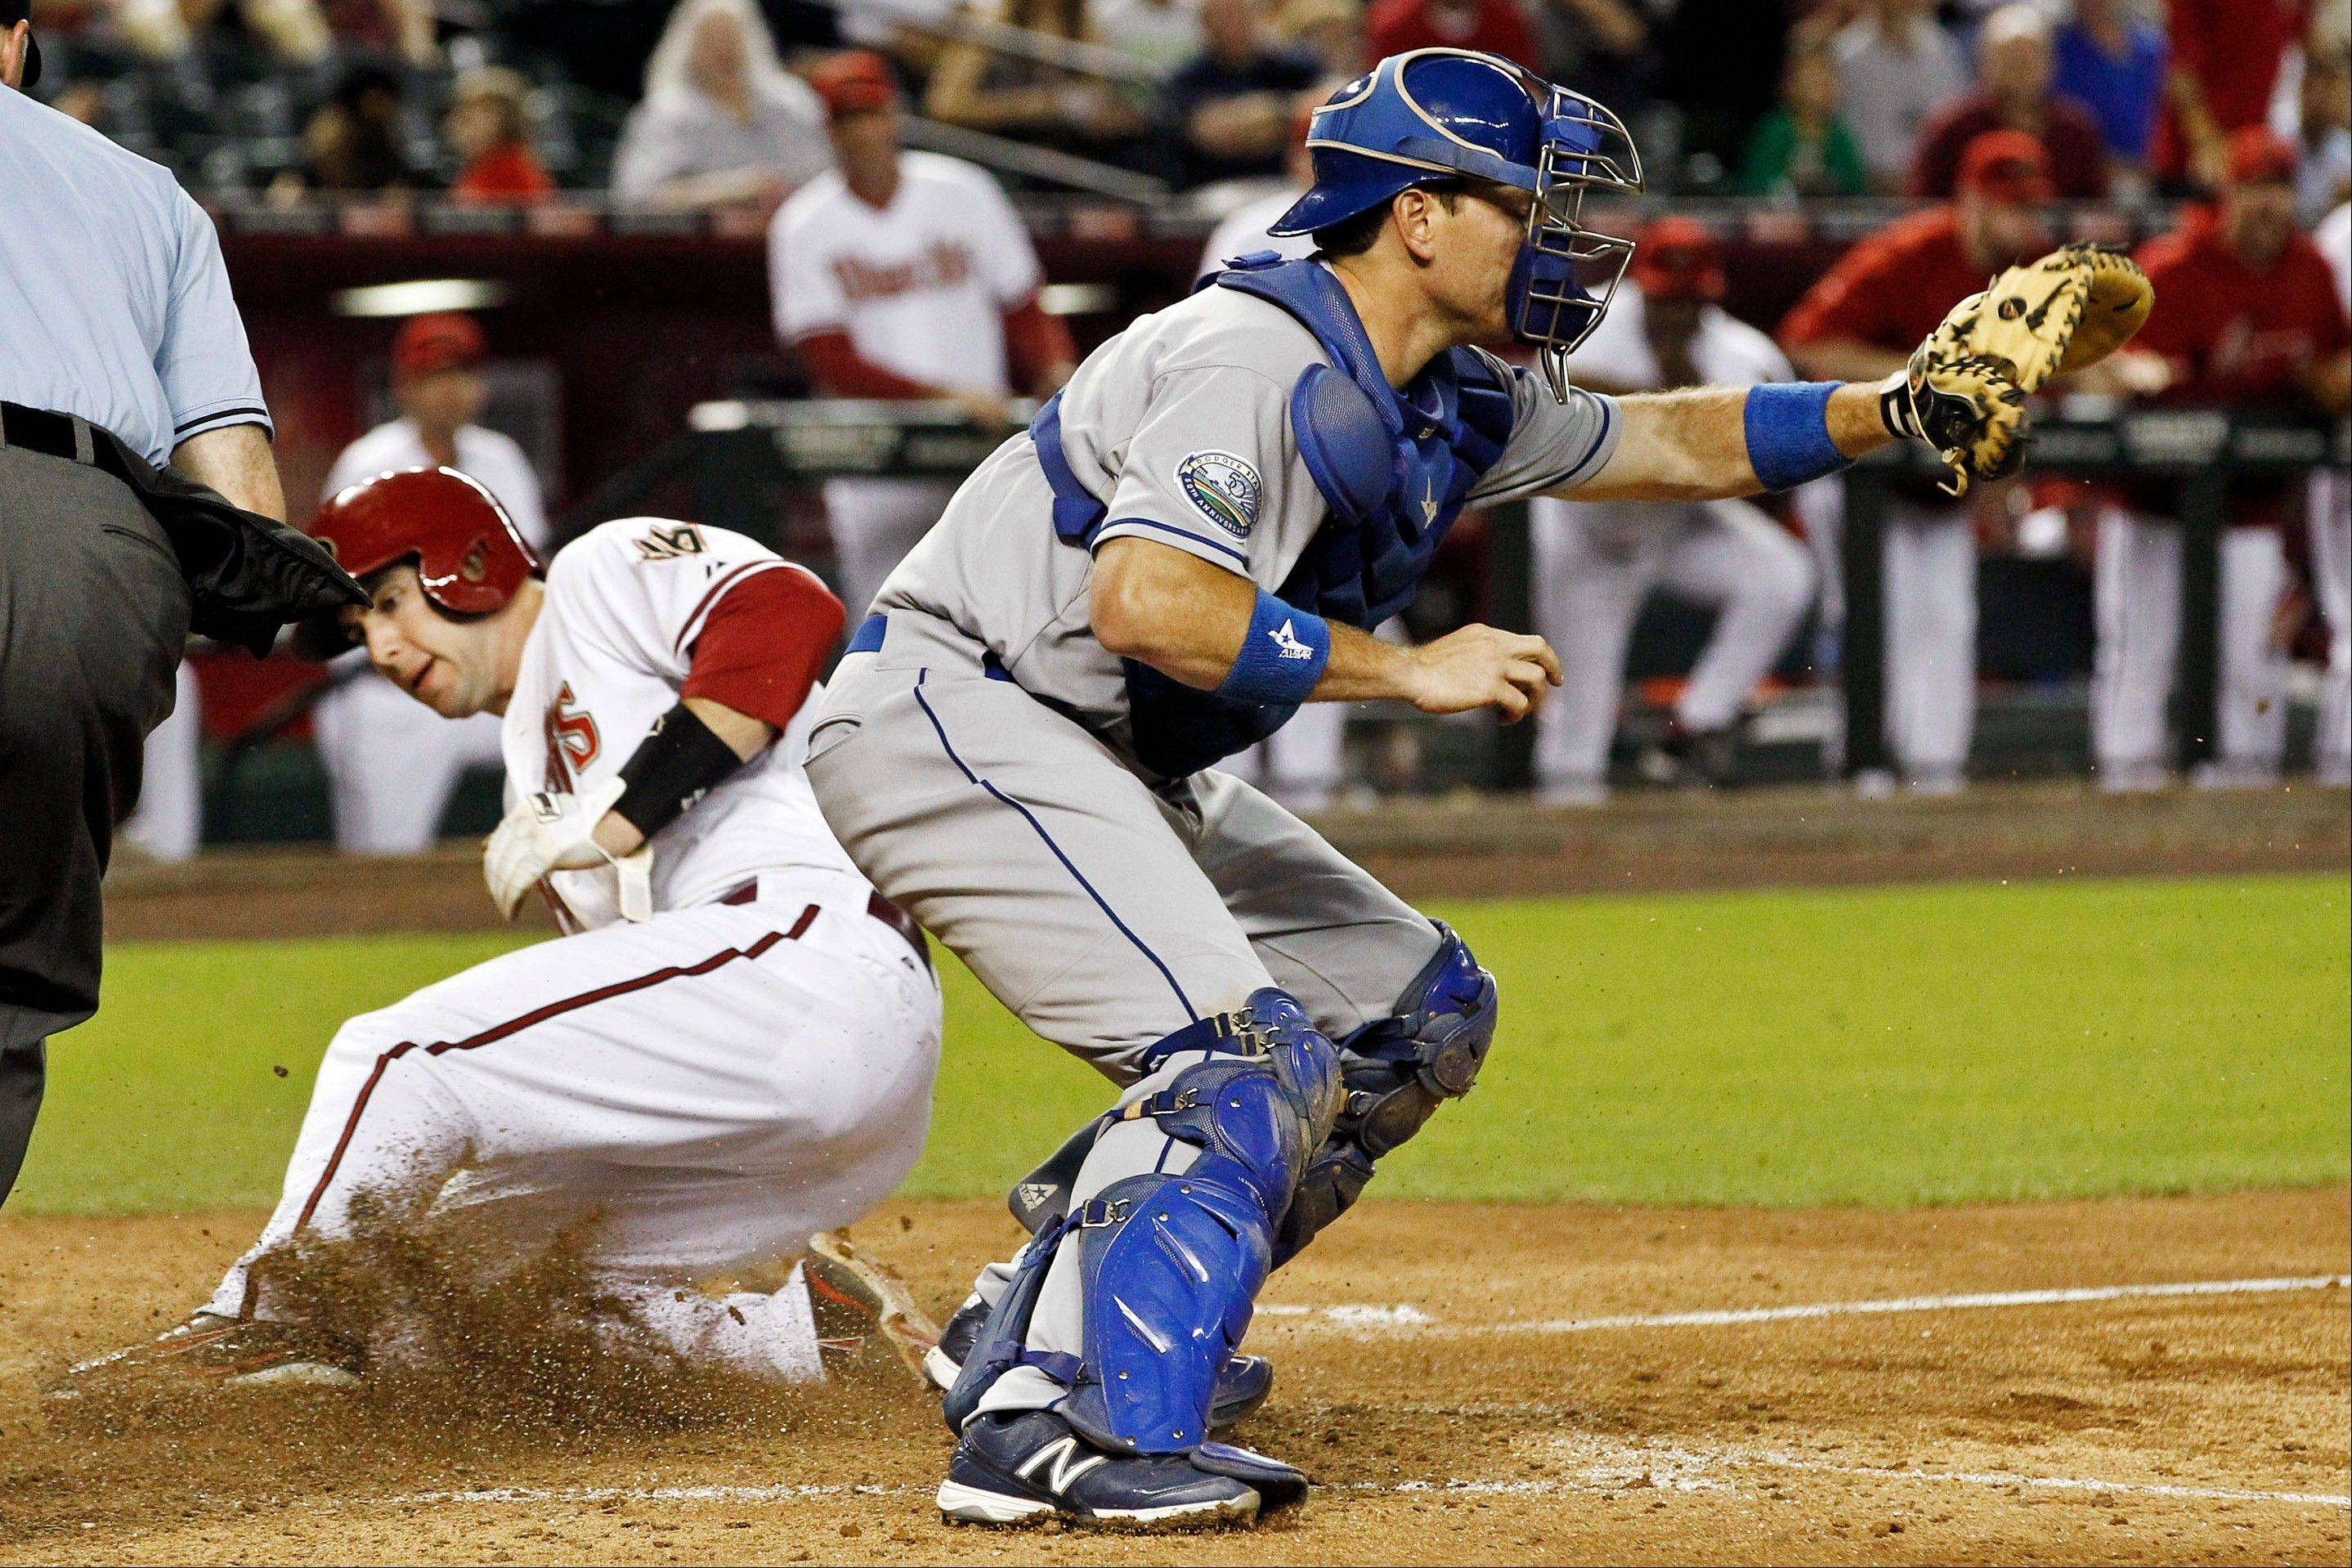 The Diamondbacks' Paul Goldschmidt scores as Los Angeles Dodgers catcher A.J. Ellis waits for a late throw during the seventh inning Tuesday in Phoenix.